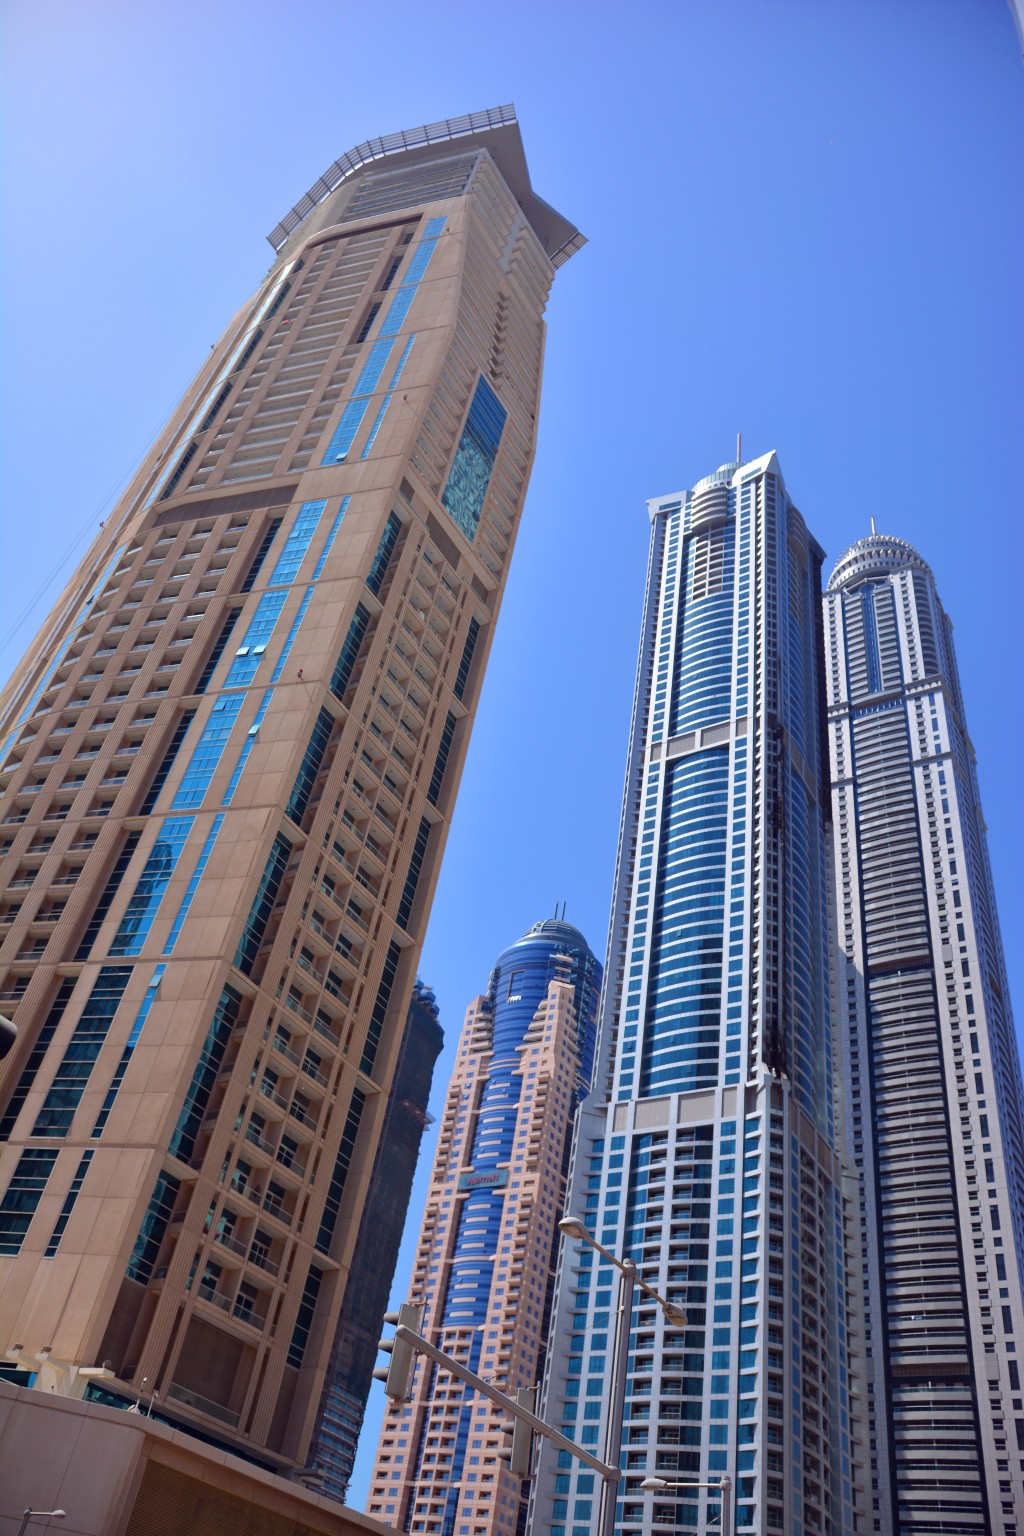 the building in the middle is the unfortunately named Dubai Torch, which got torched recently, see those charred edges?